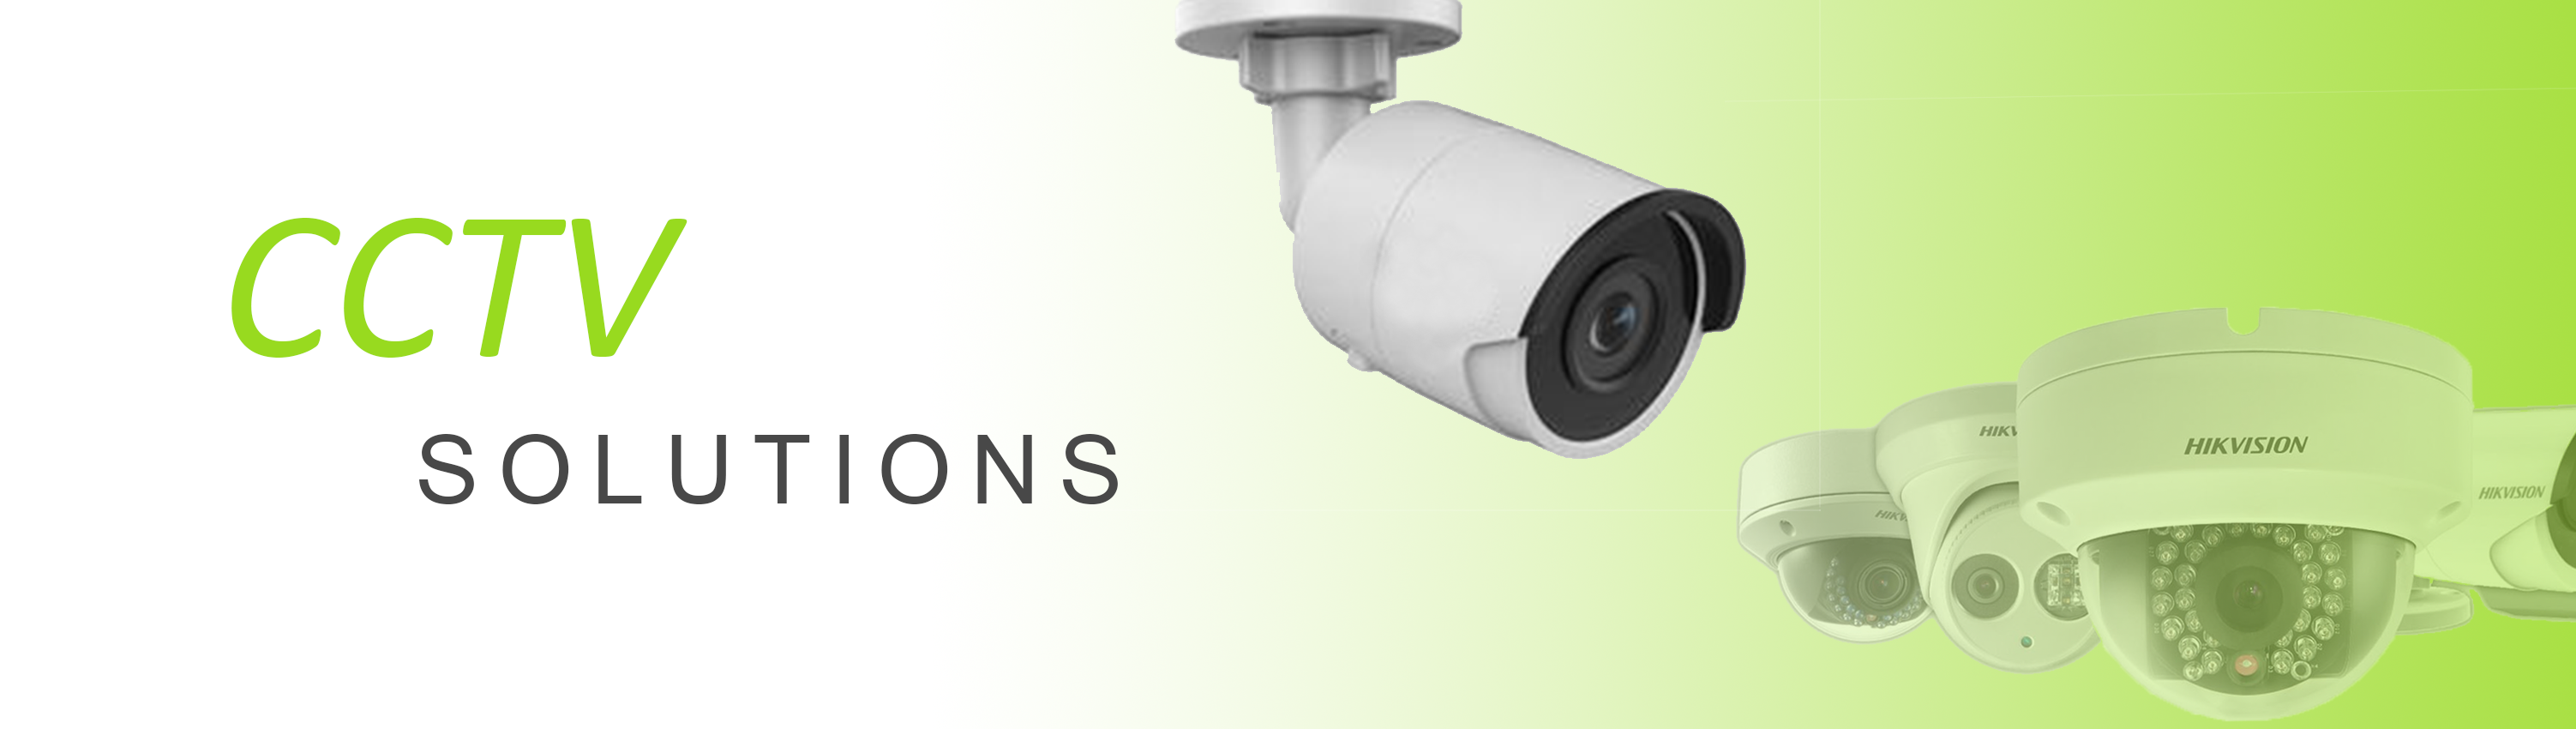 Bright Networks CCTV Solutions Graphic Image